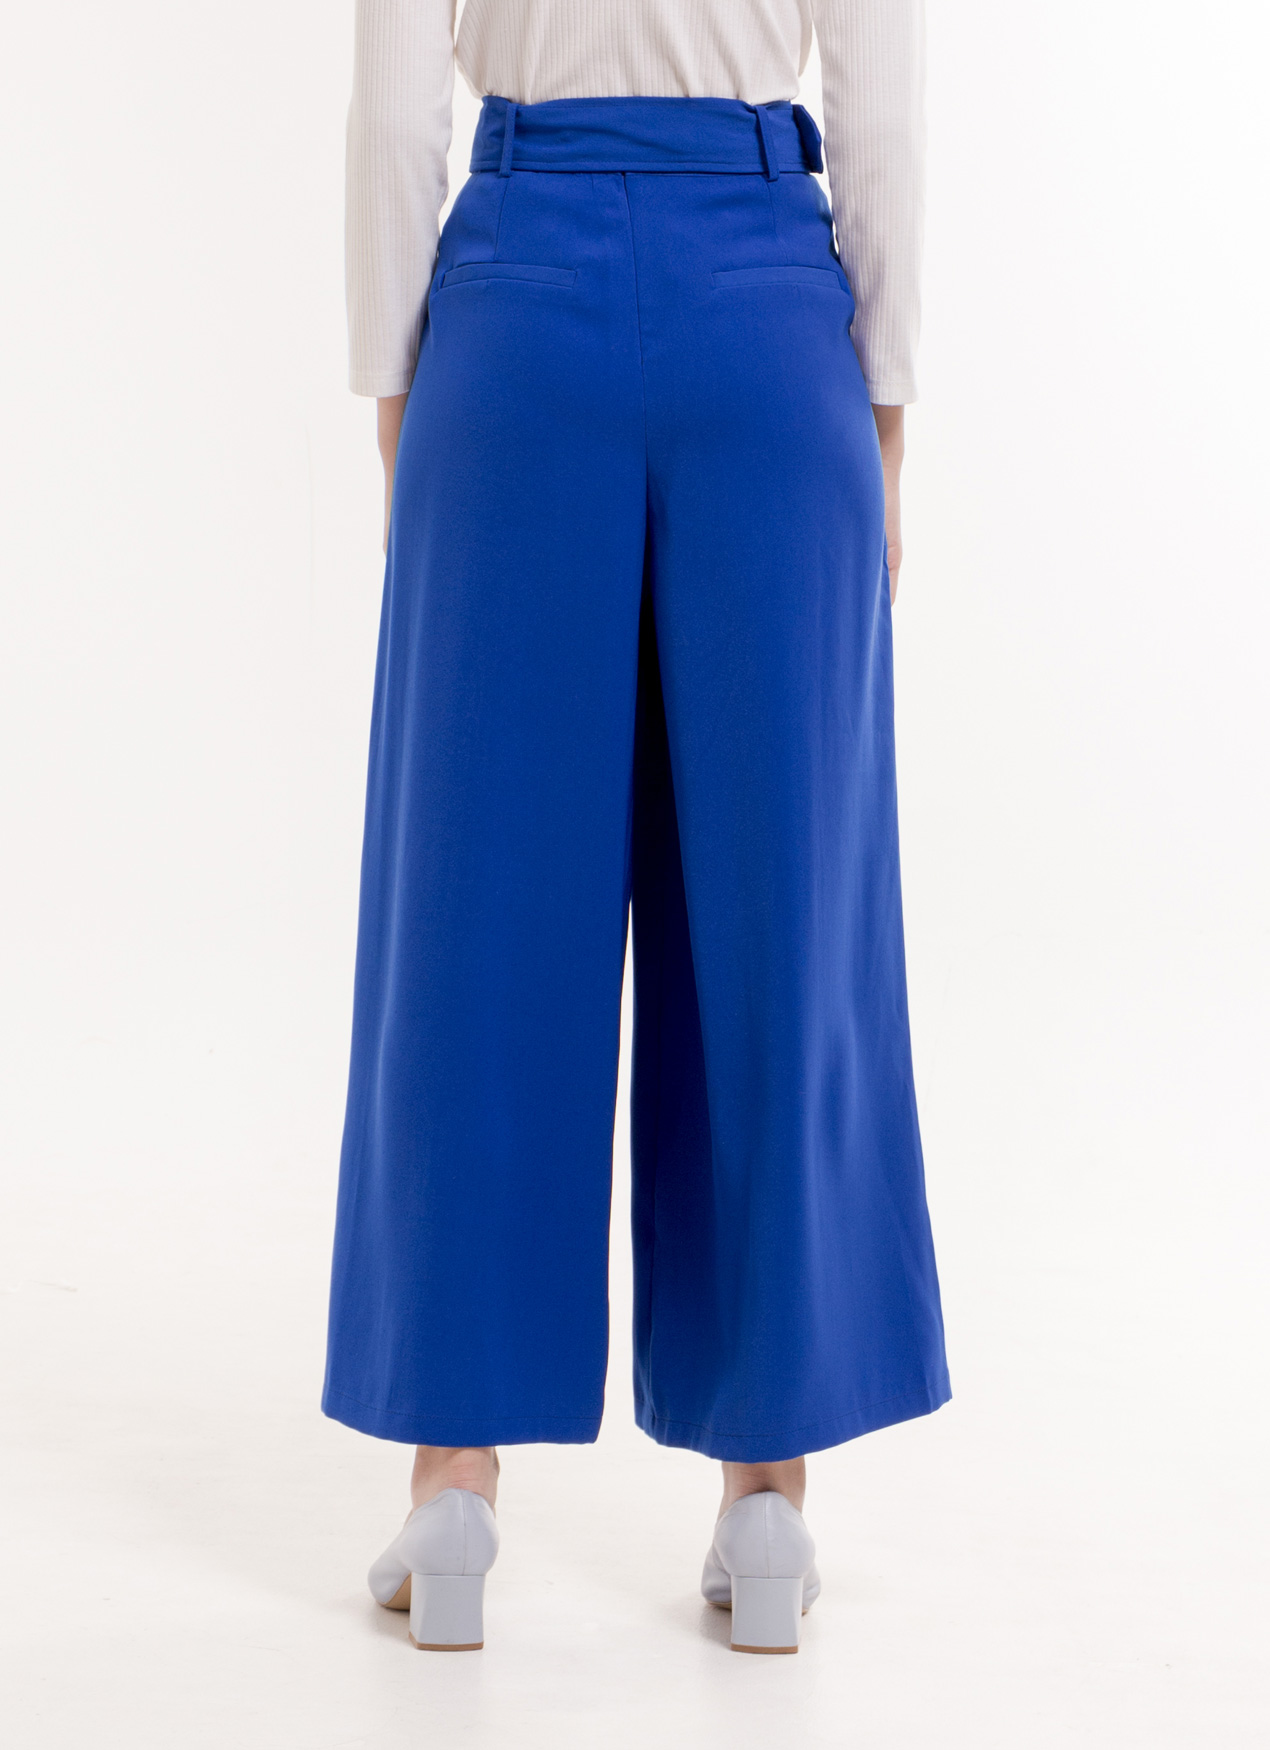 BOWN Jodi Pants - Blue